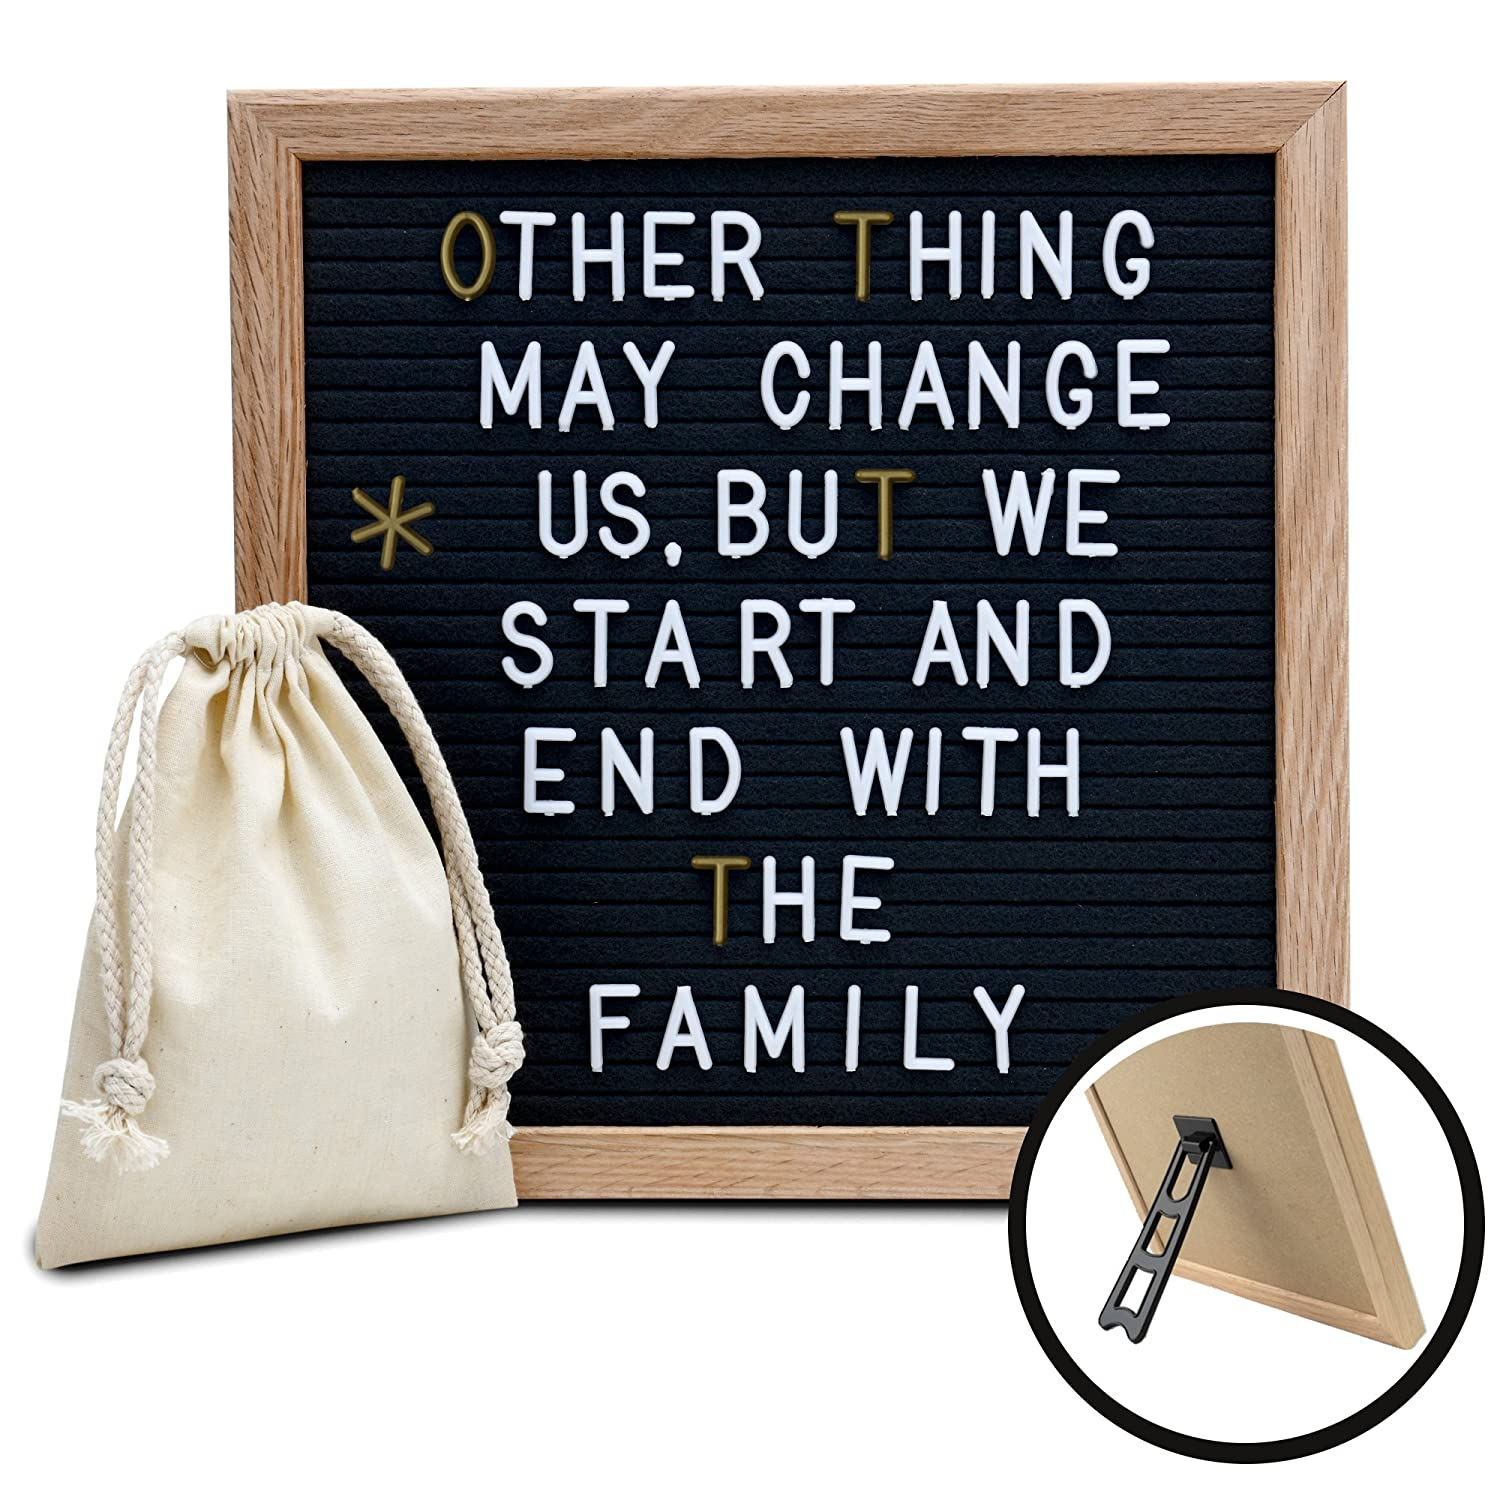 Amstorm Black Felt Letter Board 10x10 with Stand, 435 Gold and White Plastic Letters, Message Board has Oak Frame LB